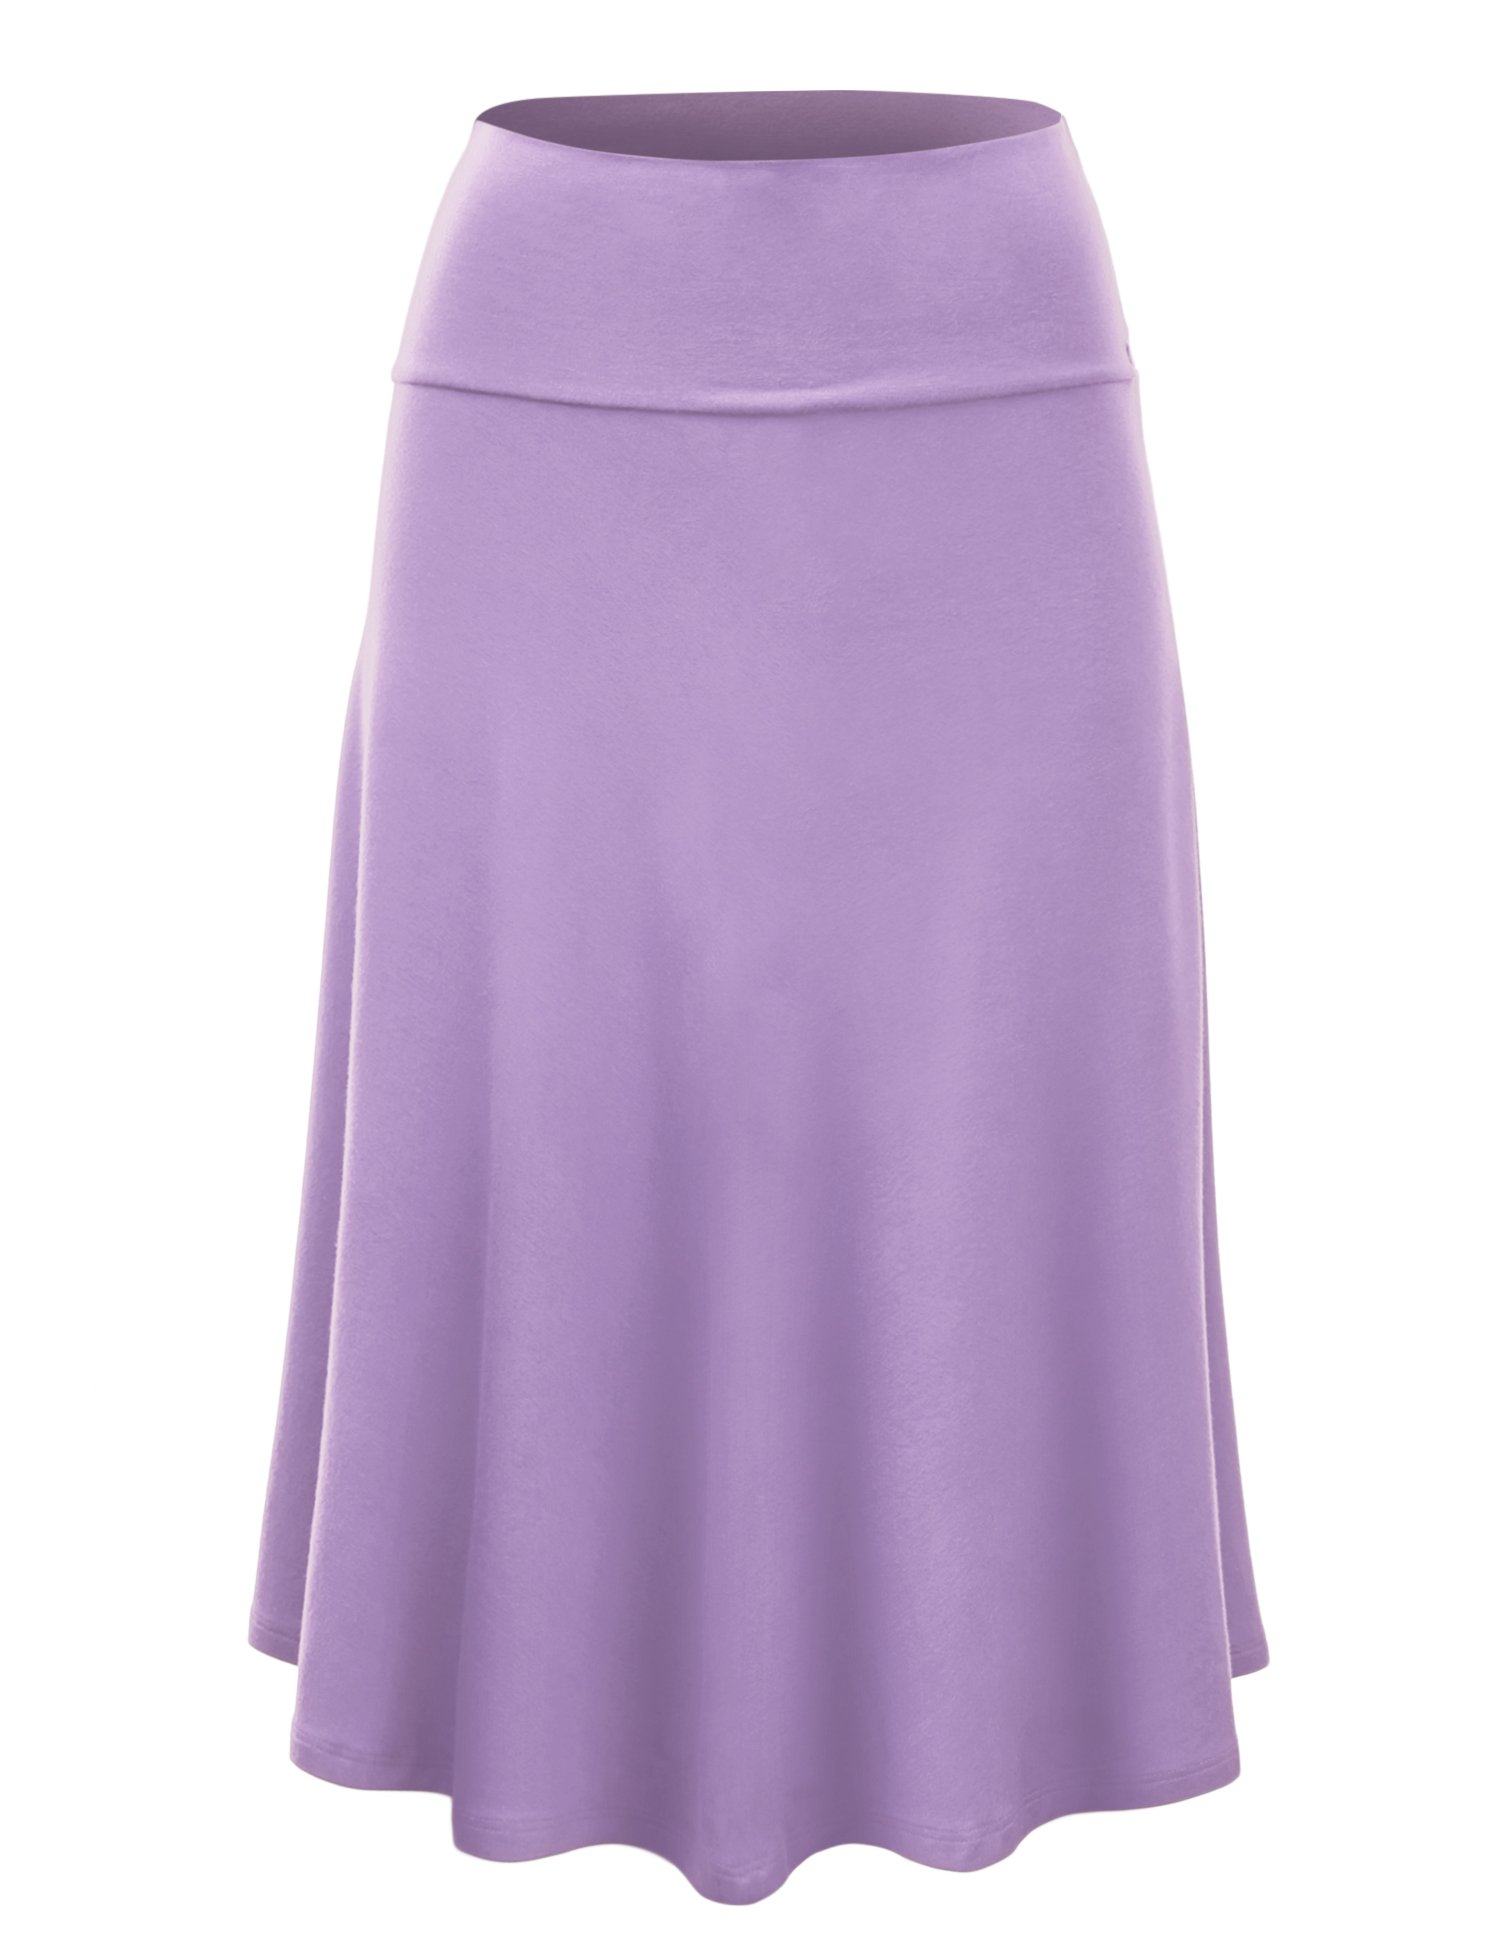 Lock and Love WB1105 Womens Lightweight Fold Over Flared Midi Skirt L Lilac